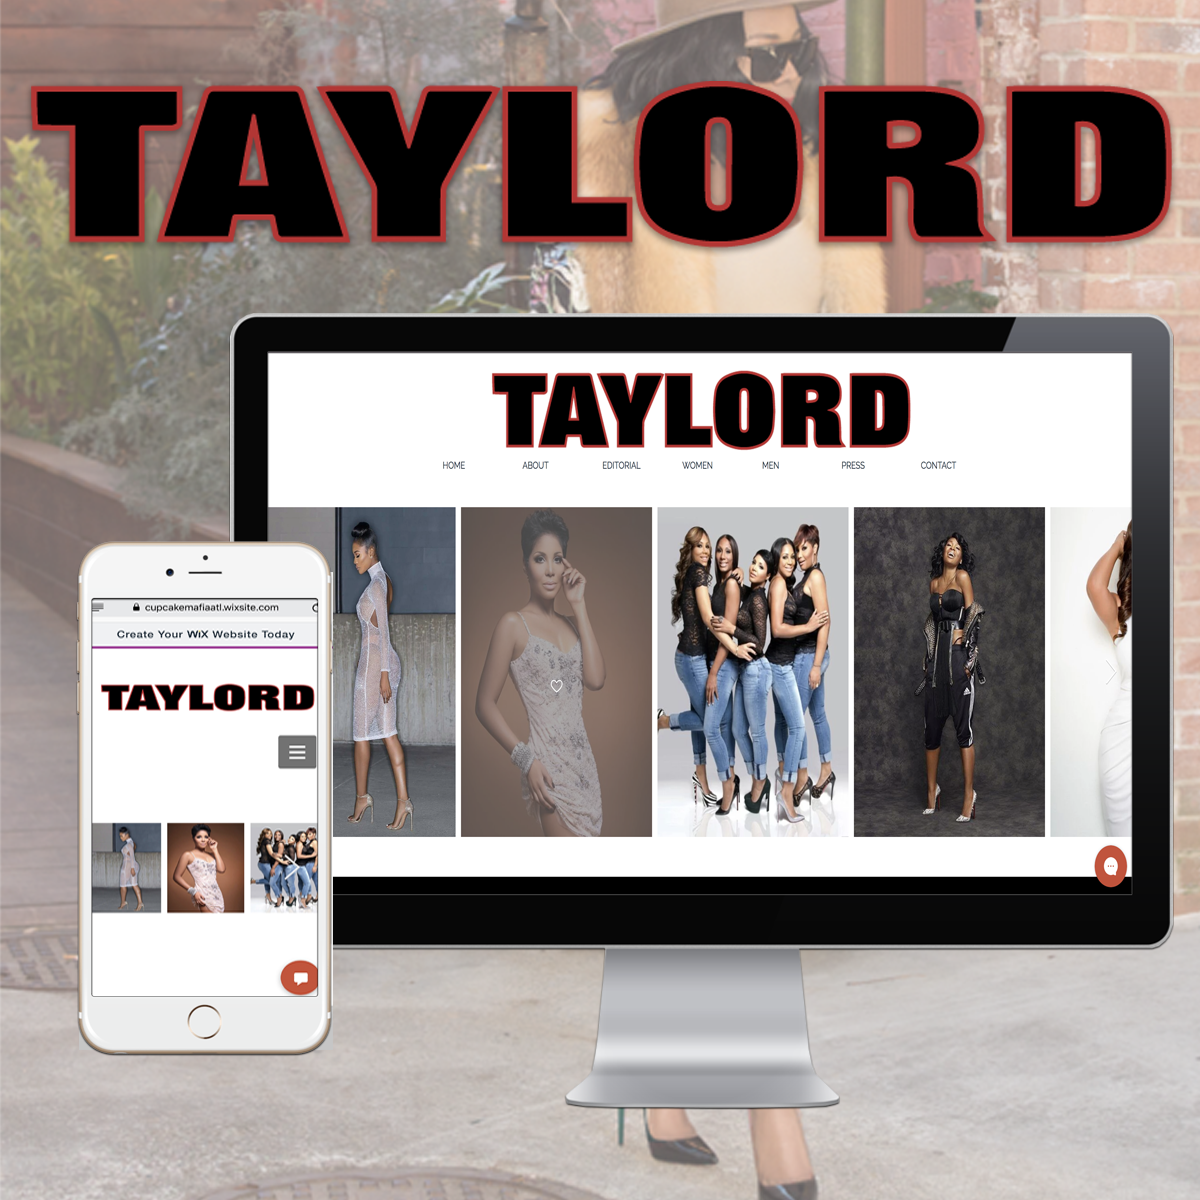 taylordwebsite